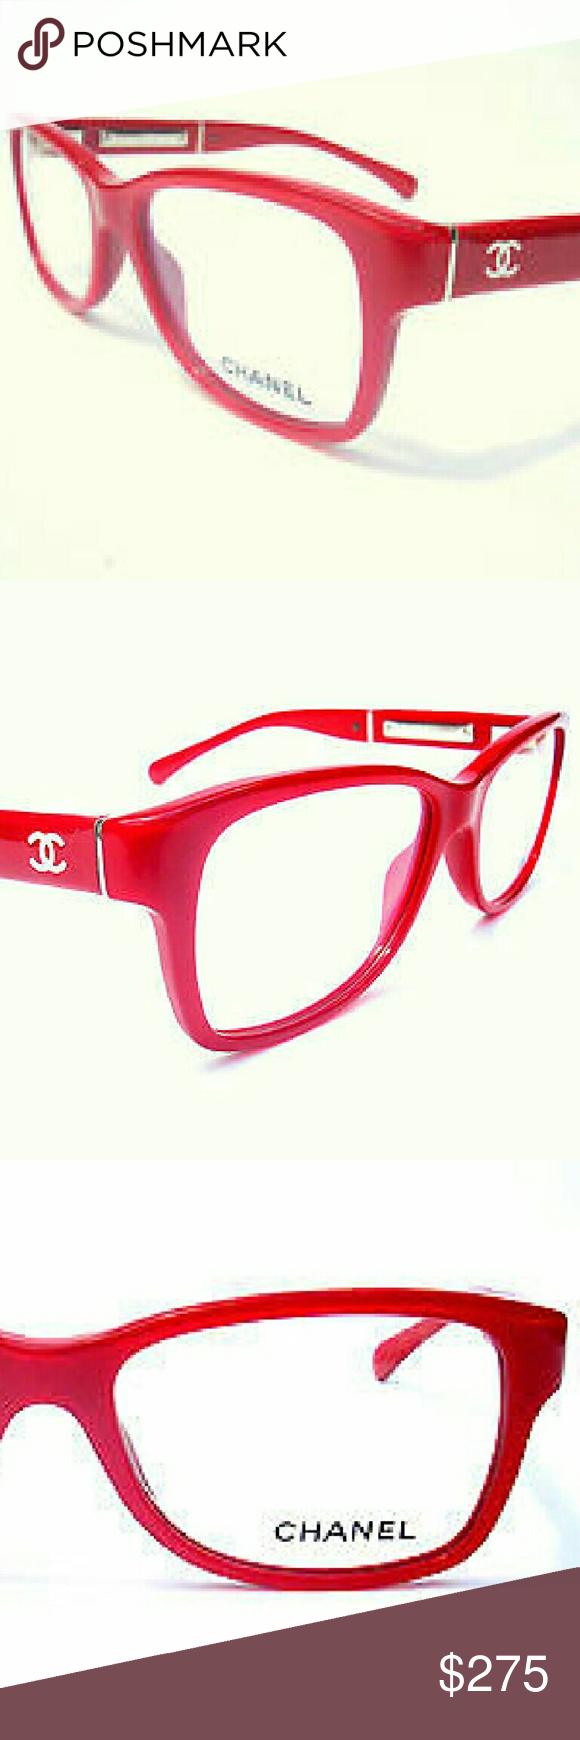 fe99e48c788 Chanel Eyeglasses New and authentic Chanel Eyeglasses Beautiful red frame  Includes original case only Chanel Accessories Glasses